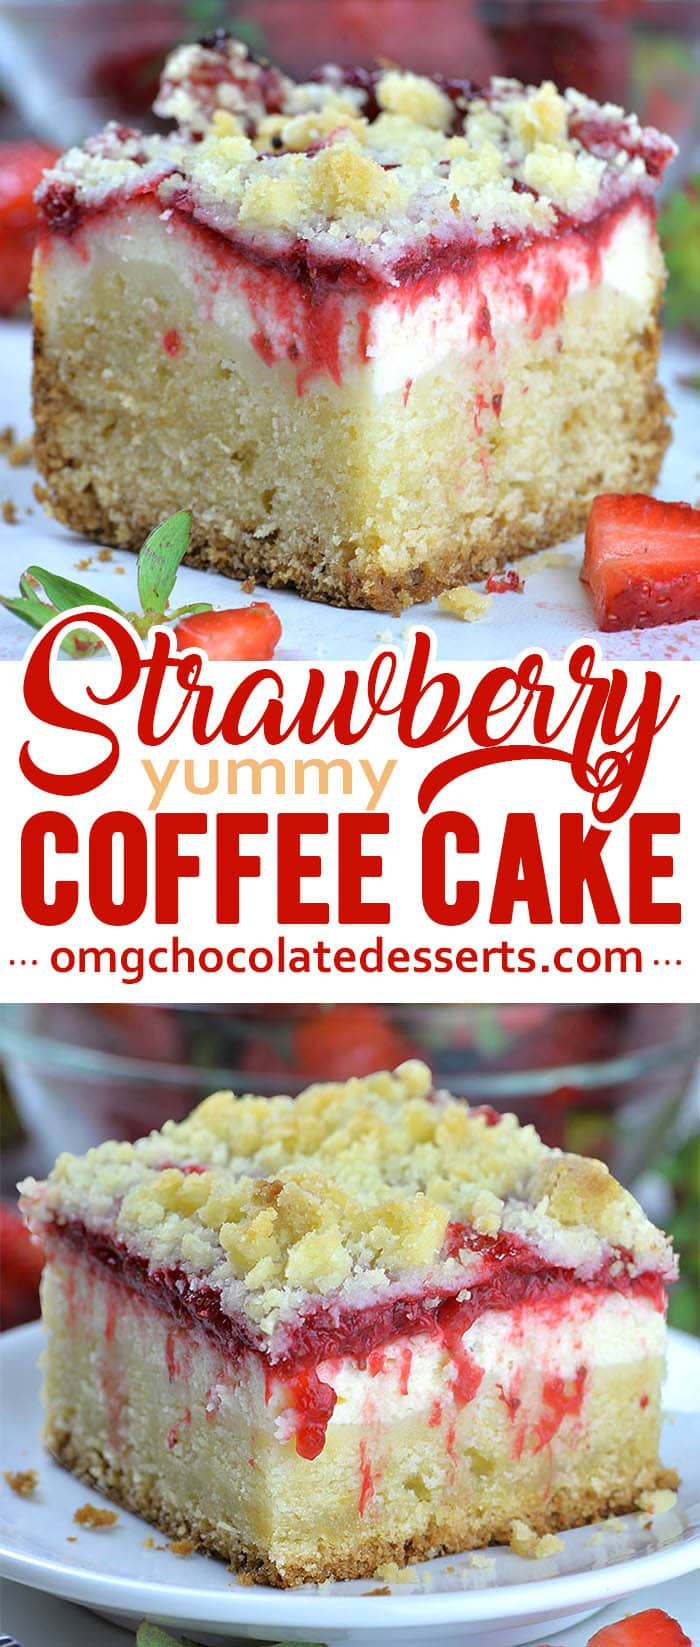 Layer of sweet and refreshing homemade strawberry sauce makes this Strawberry Coffee Cake perfect spring and summer treat. #strawberryrecipe #coffeecake #strawberrycake